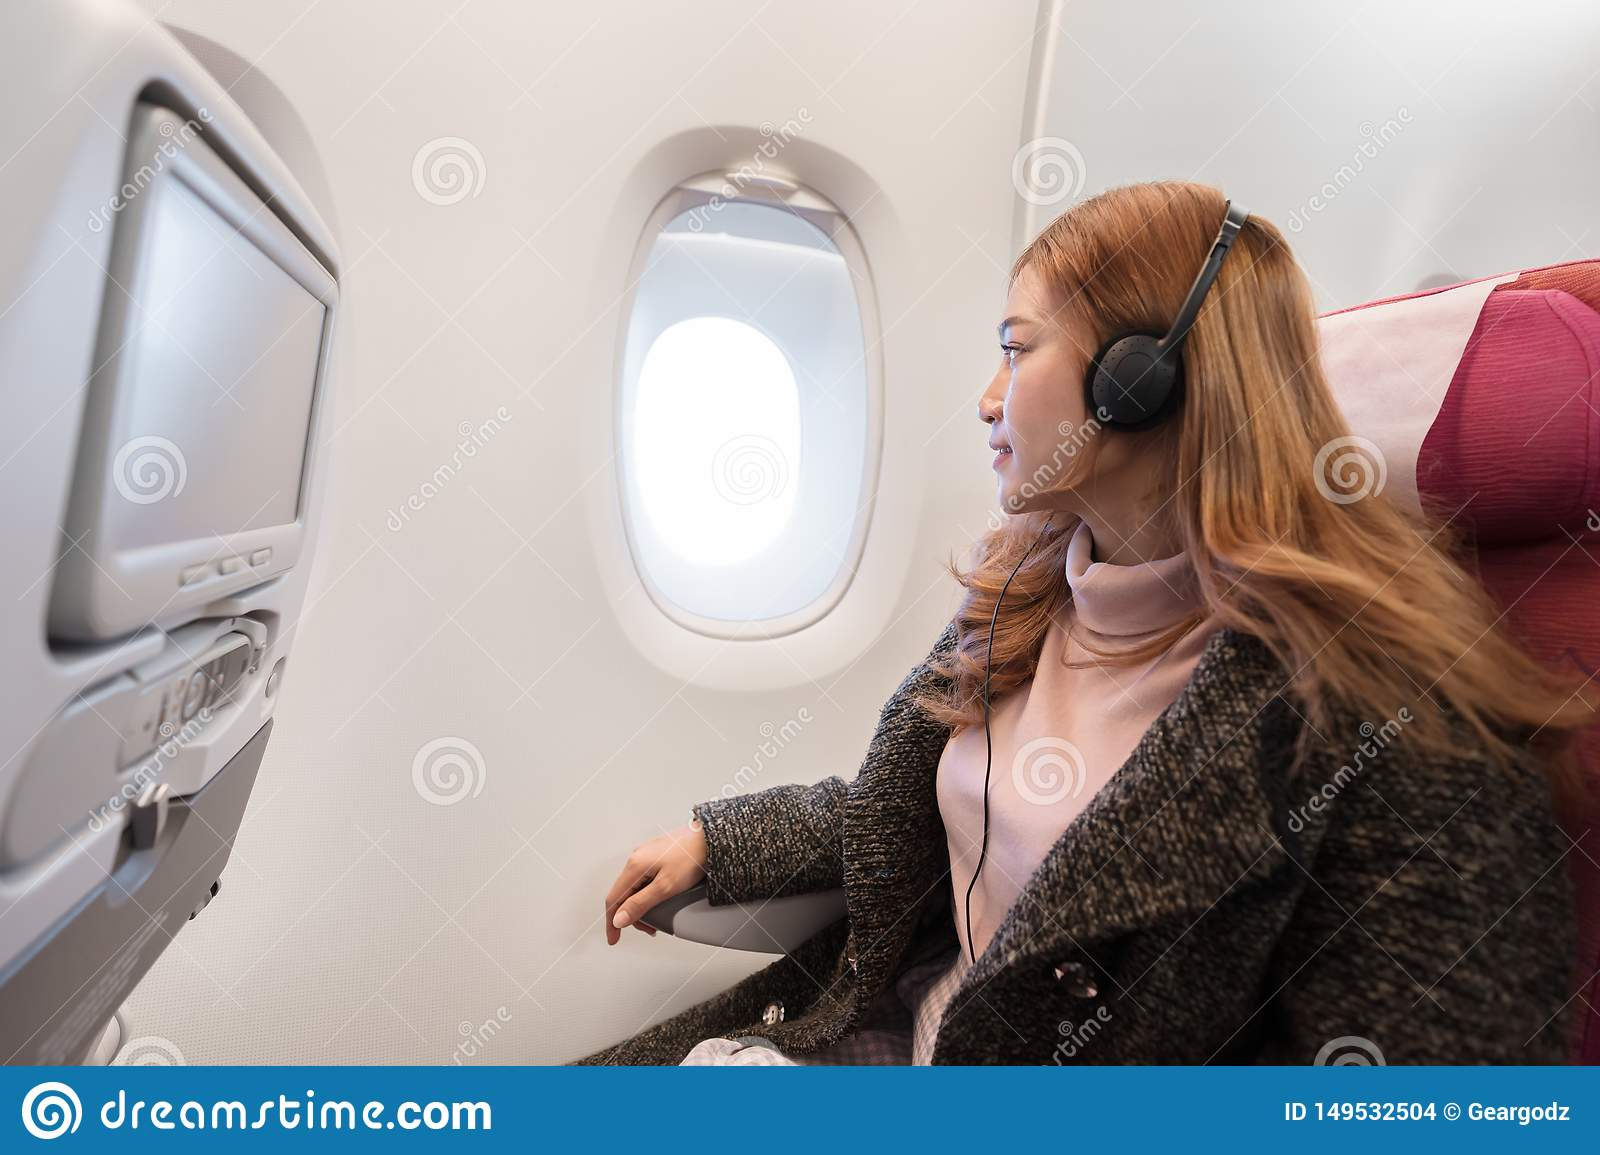 Woman listening to music with headphones on airplane in flight time